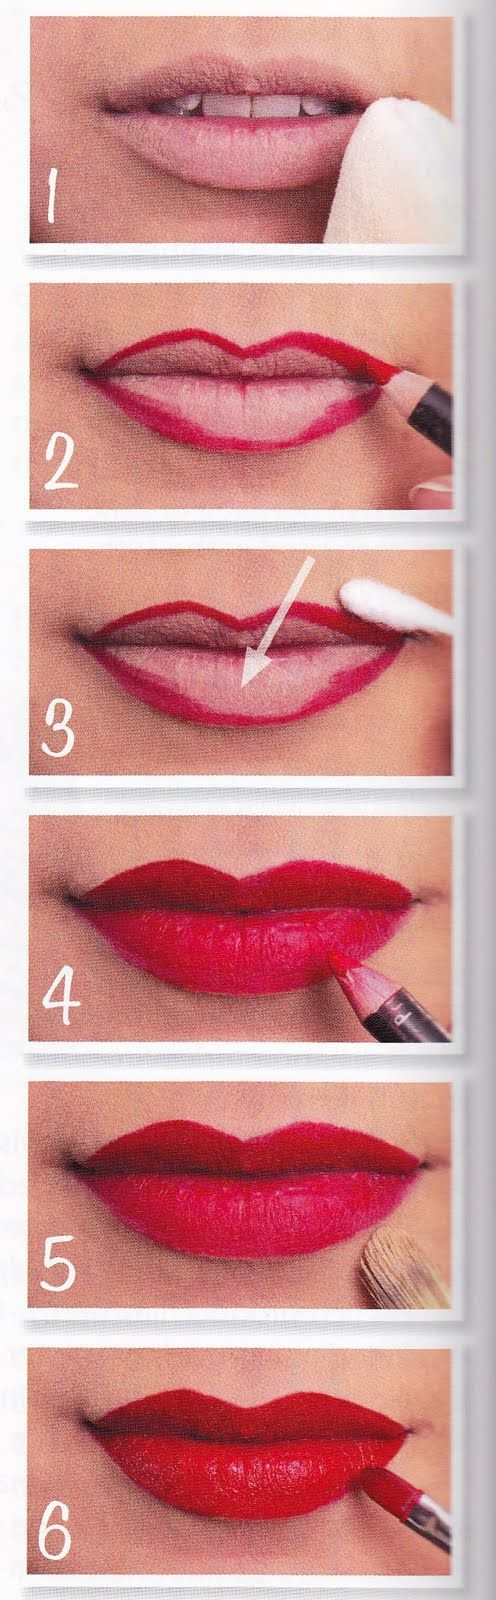 How to properly apply red lipstick.